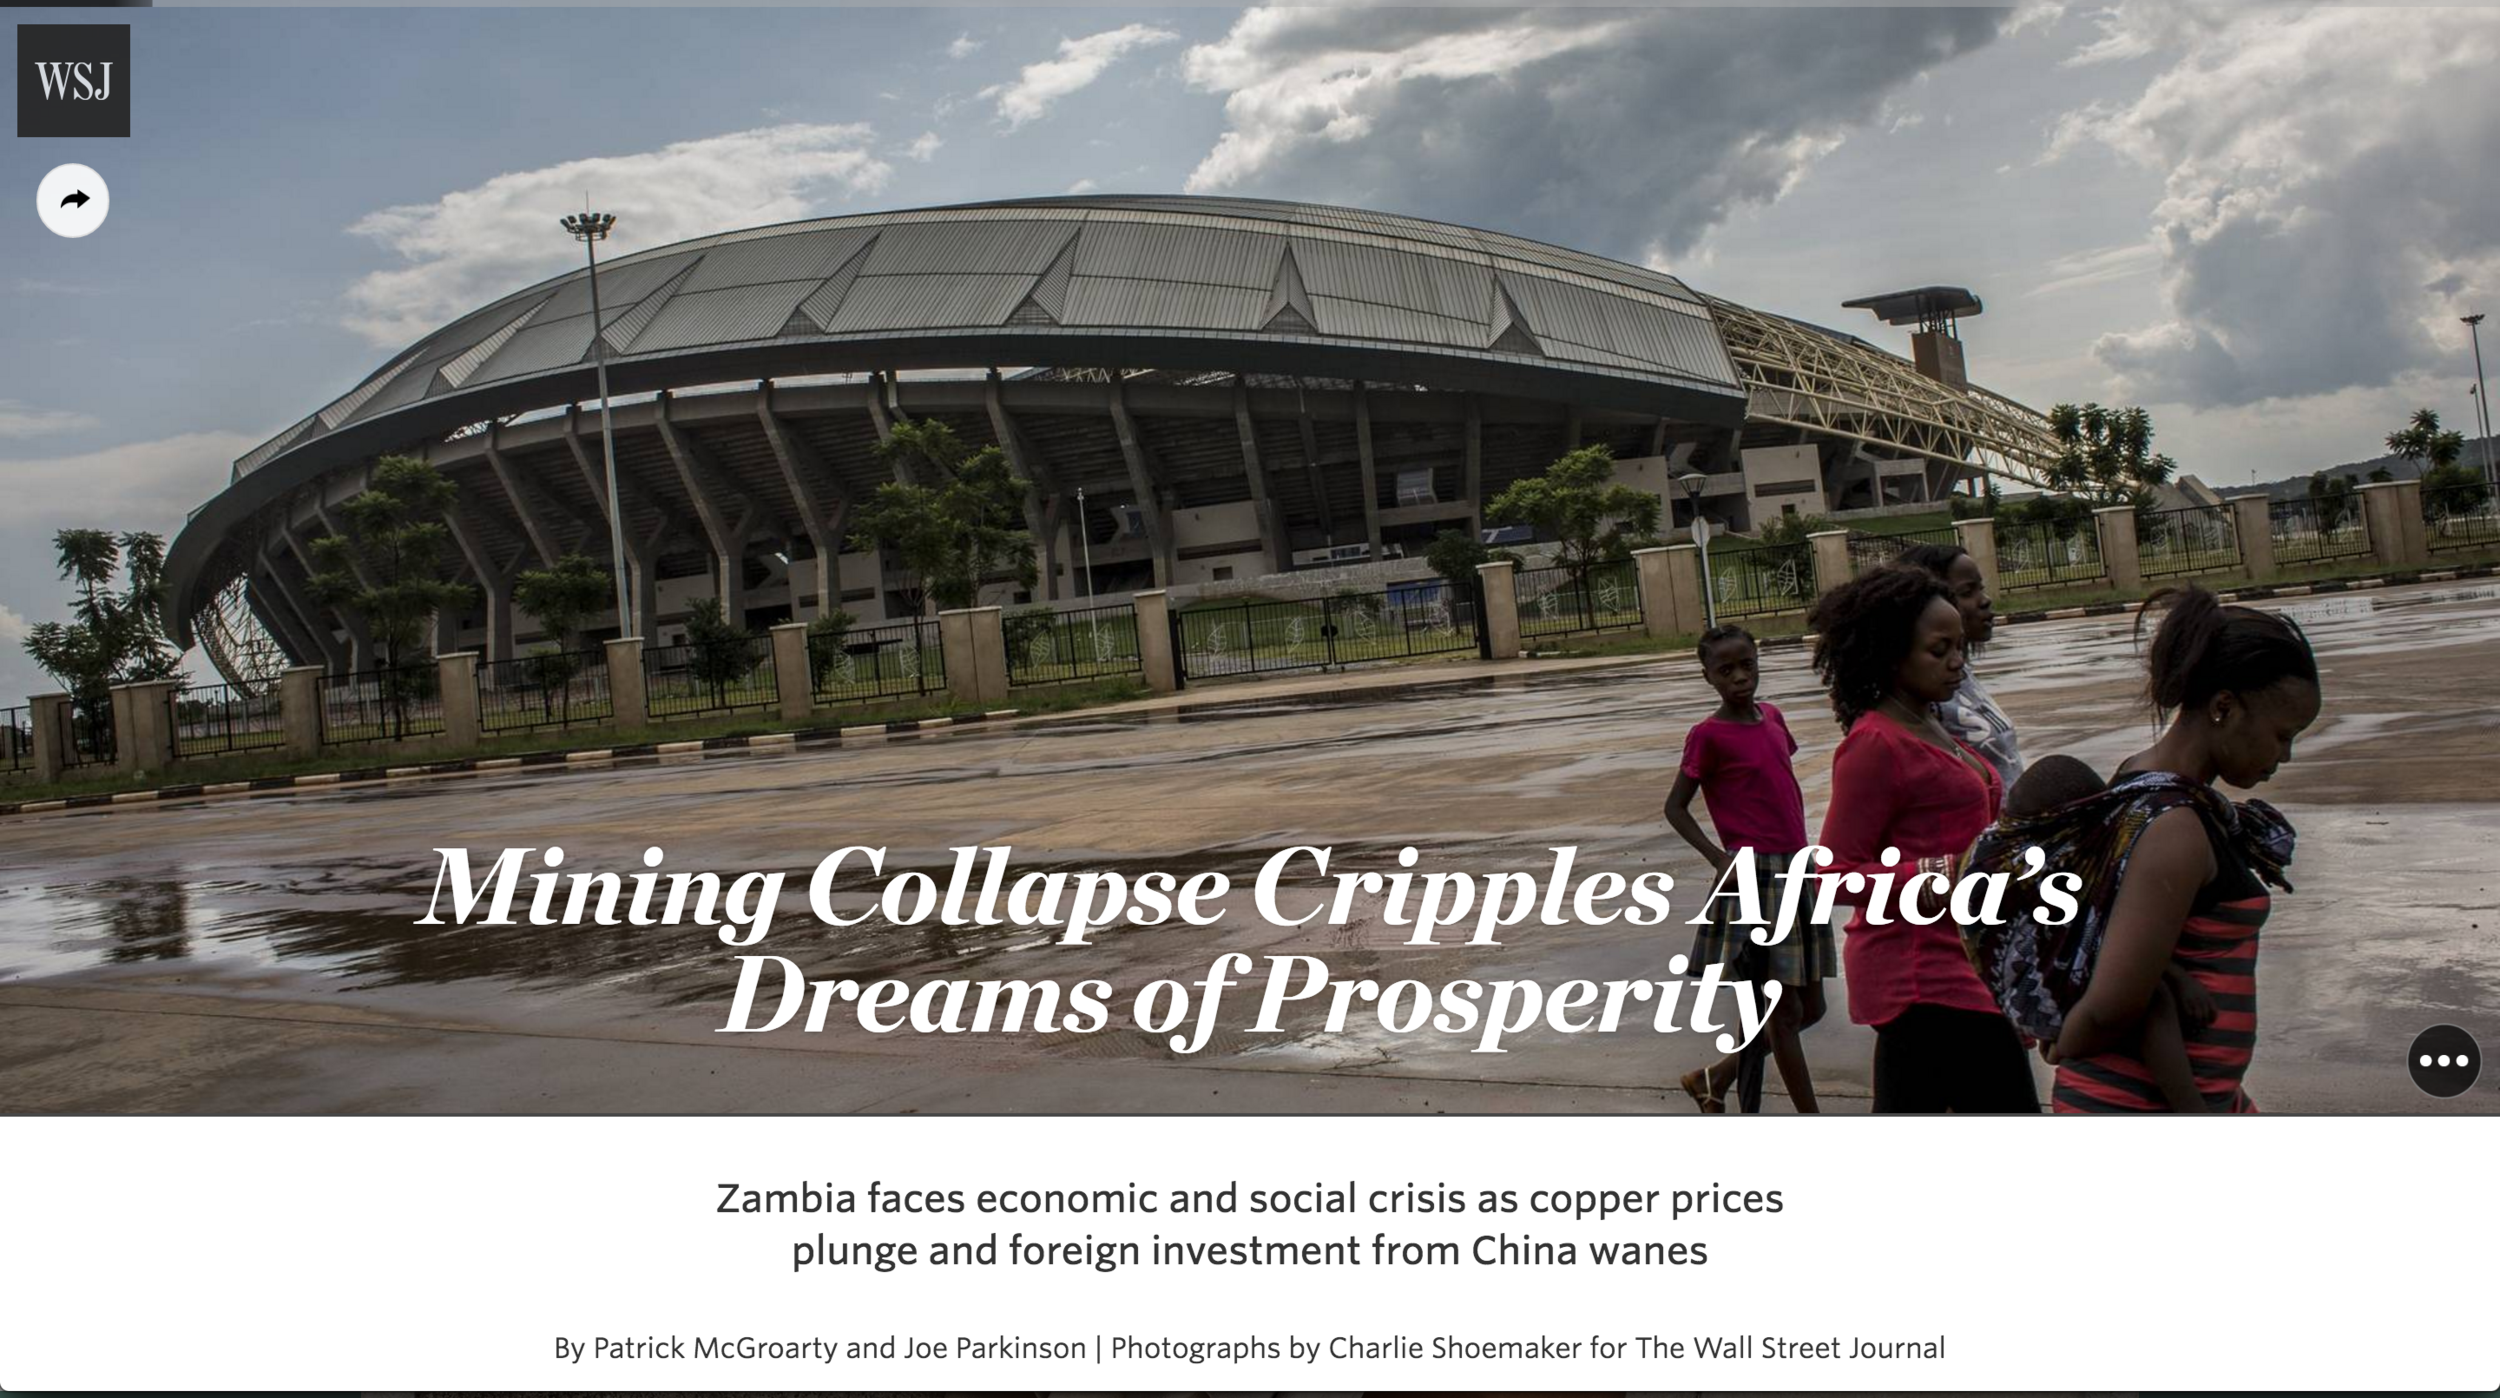 Mining Collapse Cripples Africa's Dreams of Prosperity for the WSJ